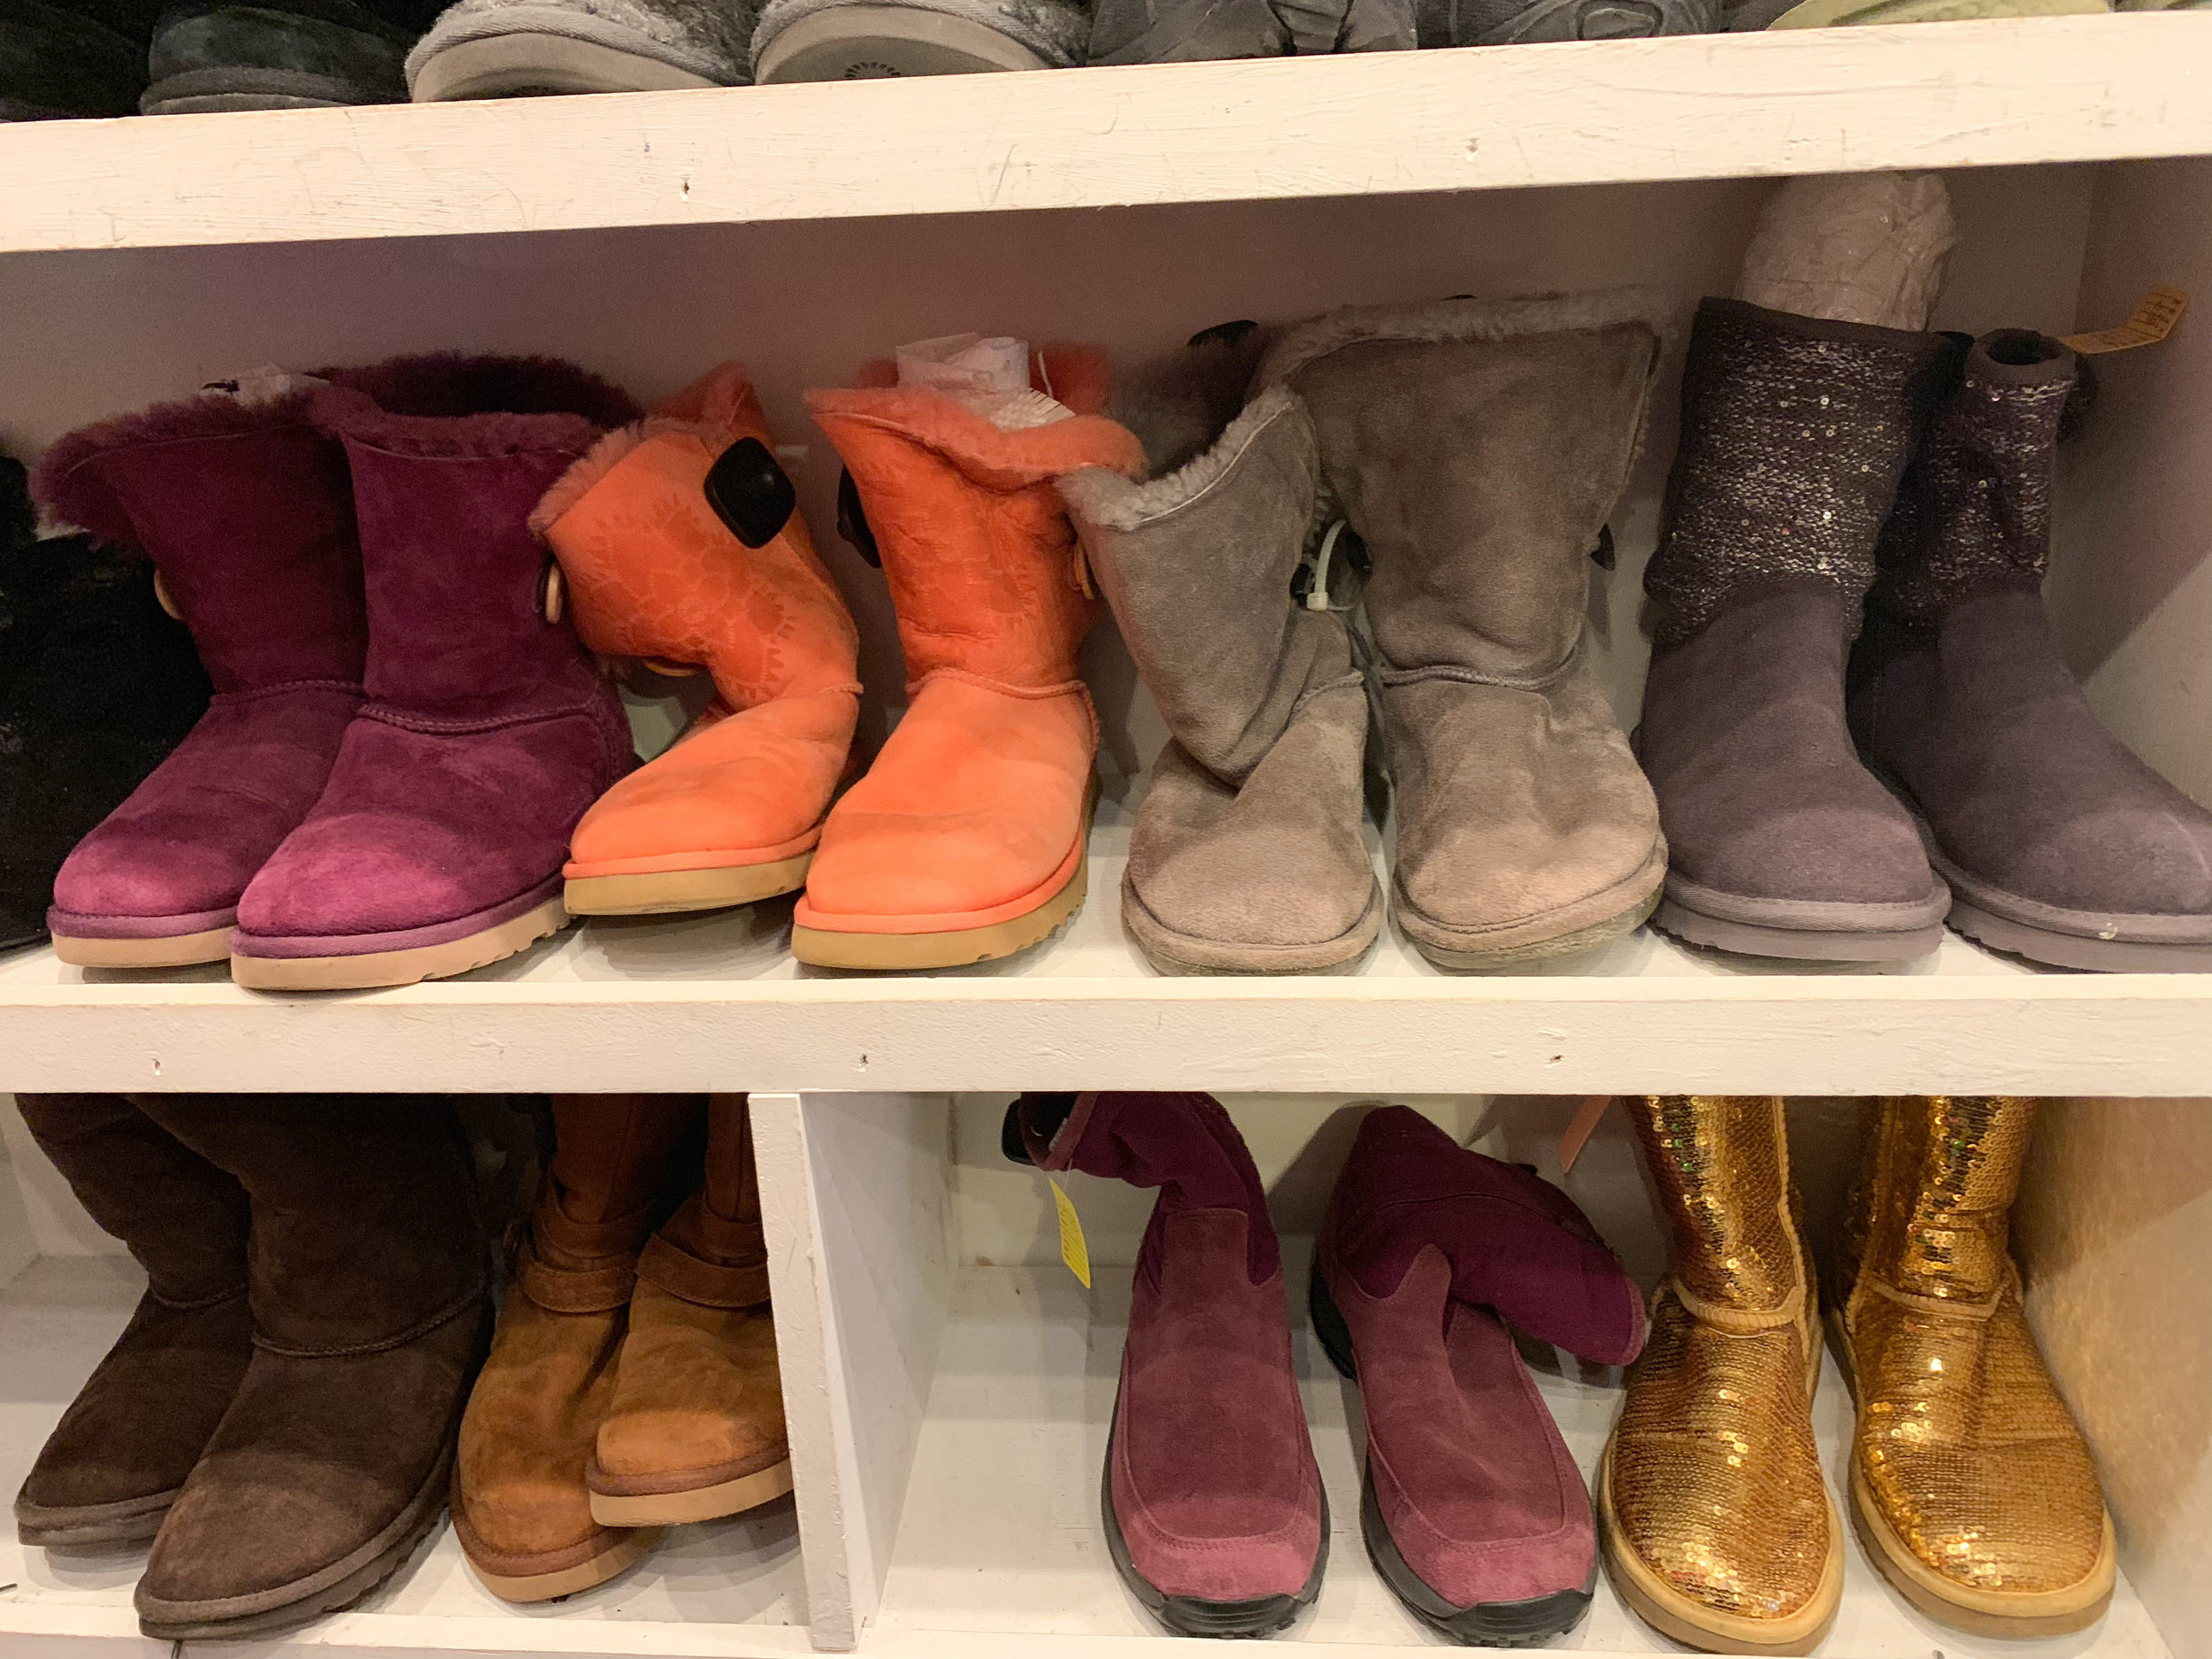 I never thought I missed my UGGs until now. The grey ones were only $18.